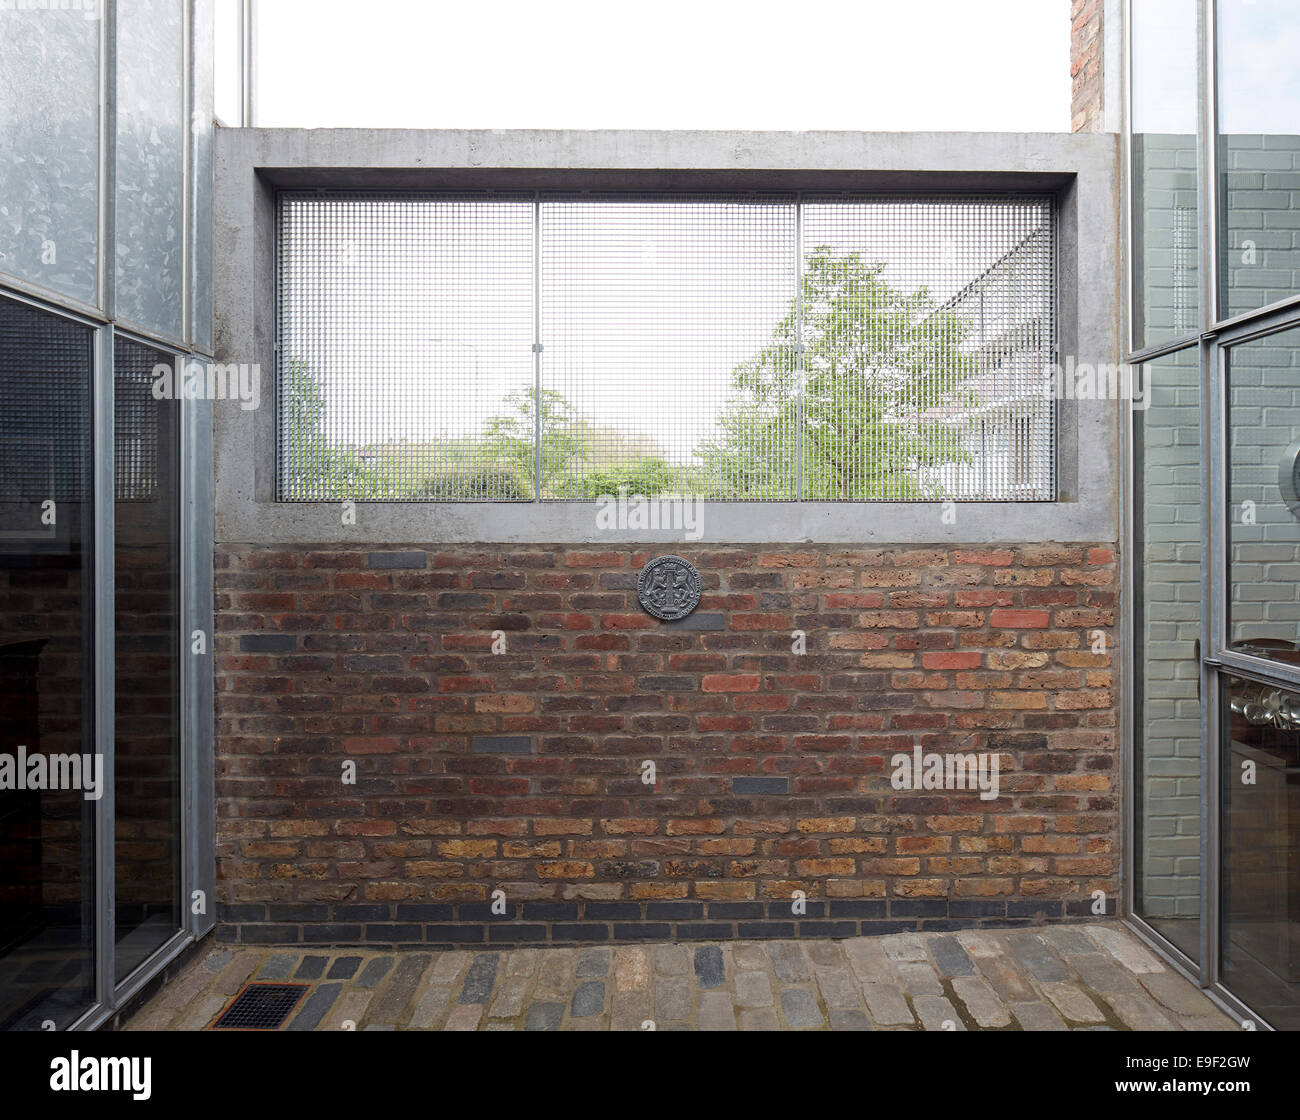 Hale Street House, a revisit, London, United Kingdom. Architect: DSDHA, 2014. - Stock Image